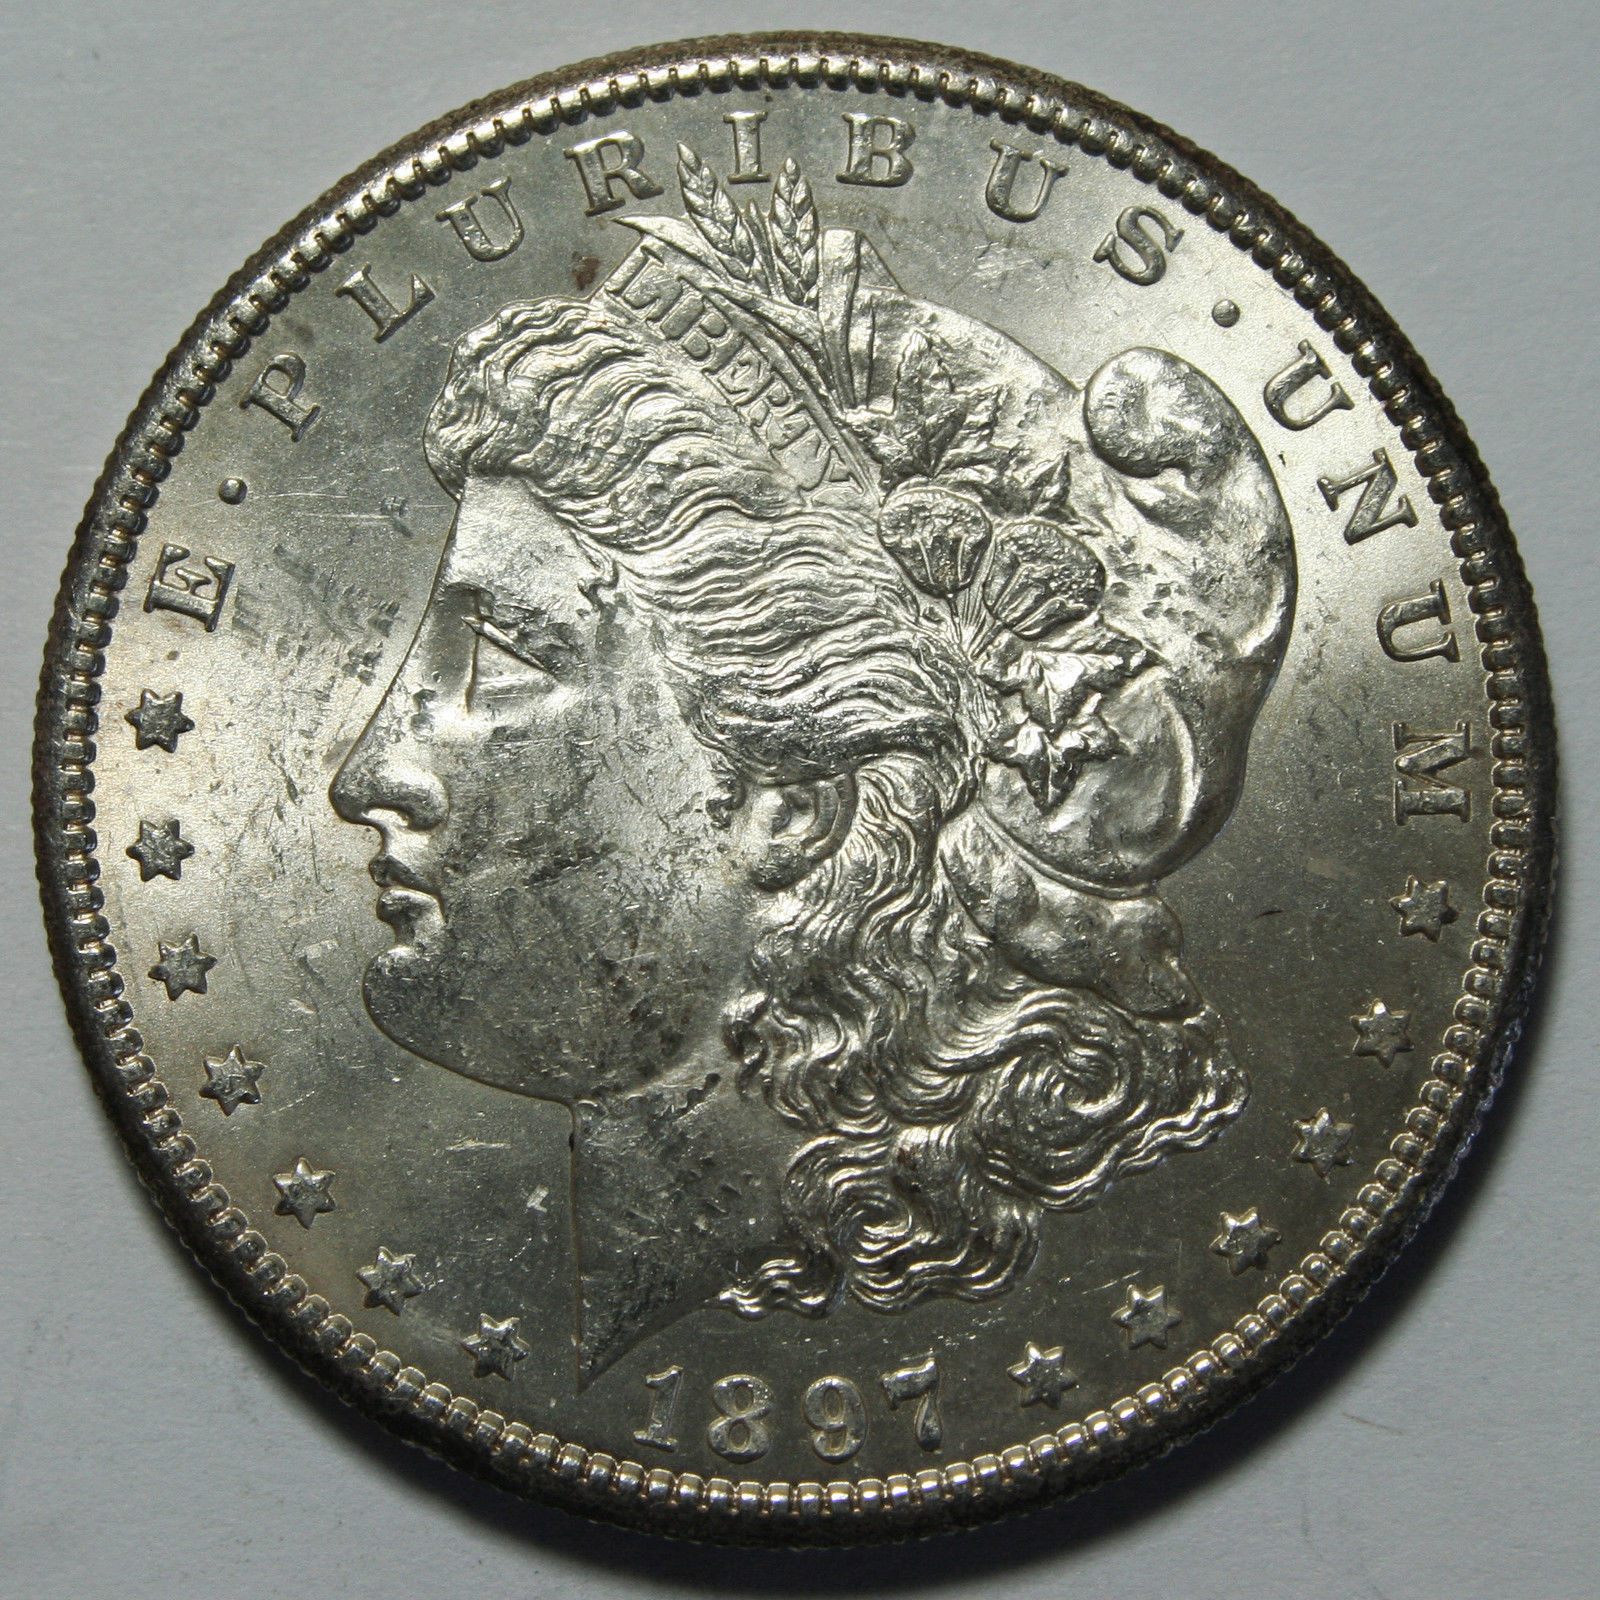 1897S MORGAN SILVER DOLLAR COIN Lot# A 2100